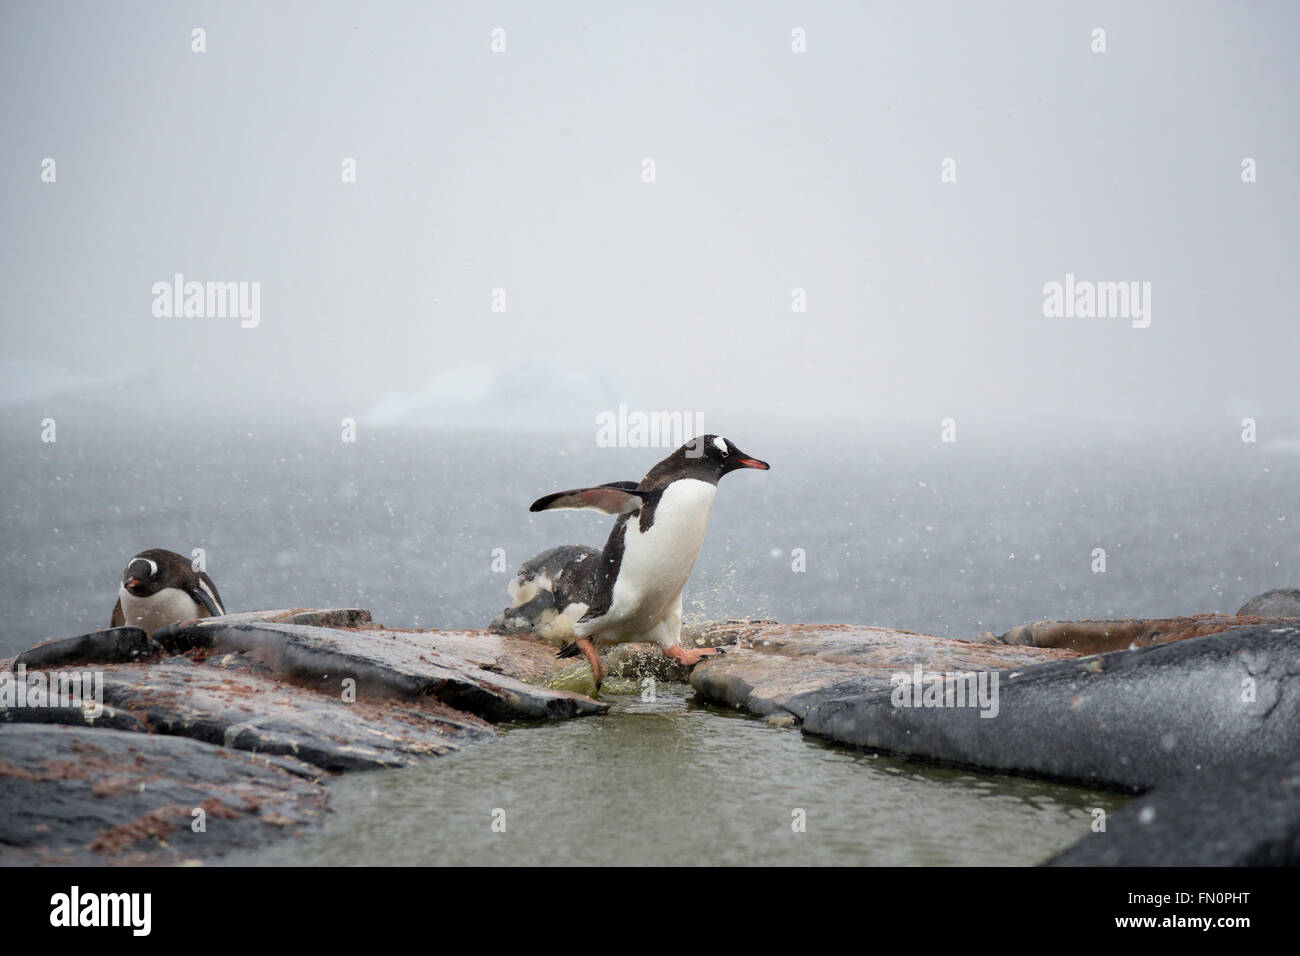 Antarctica, Antarctic peninsula, Booth Island, gentoo penguin fetching stones to put on nest - Stock Image